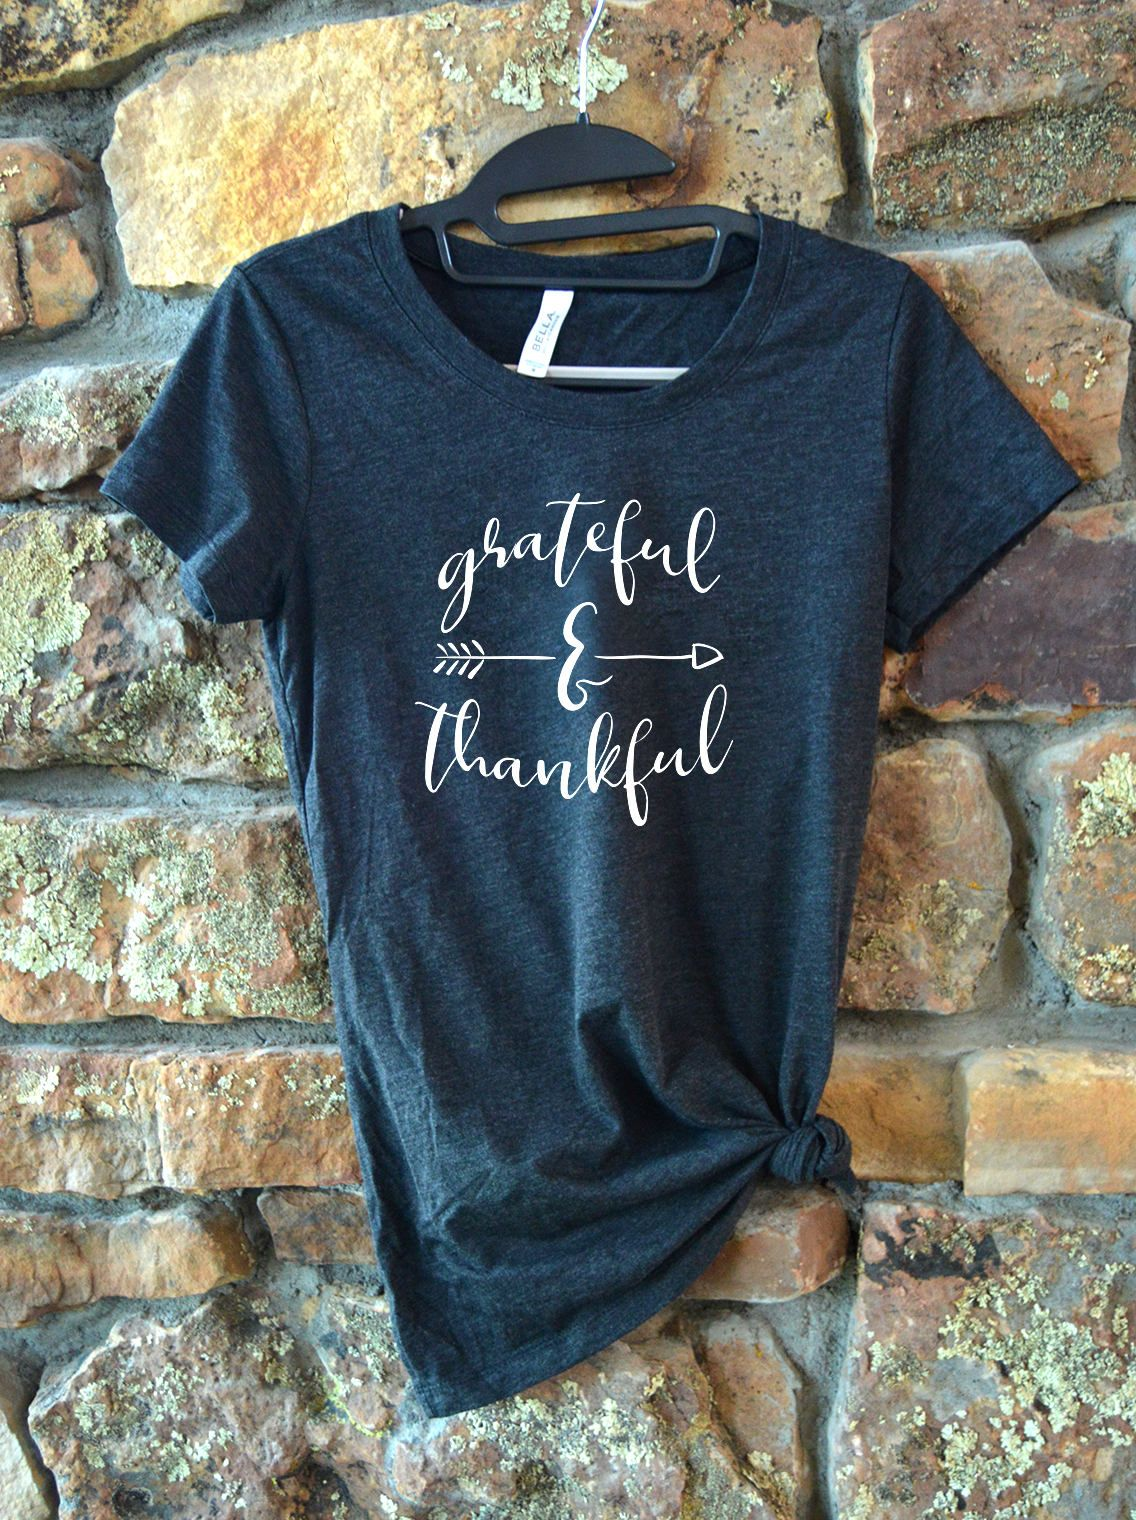 ba88fc144 Thankful Shirt - Fall Shirts - Thanksgiving Shirt - Ladies Fall Shirt - Womens  Fall Shirts - Shirts With Sayings - Casual Tees - Tshirts by  CimarronDesigns ...